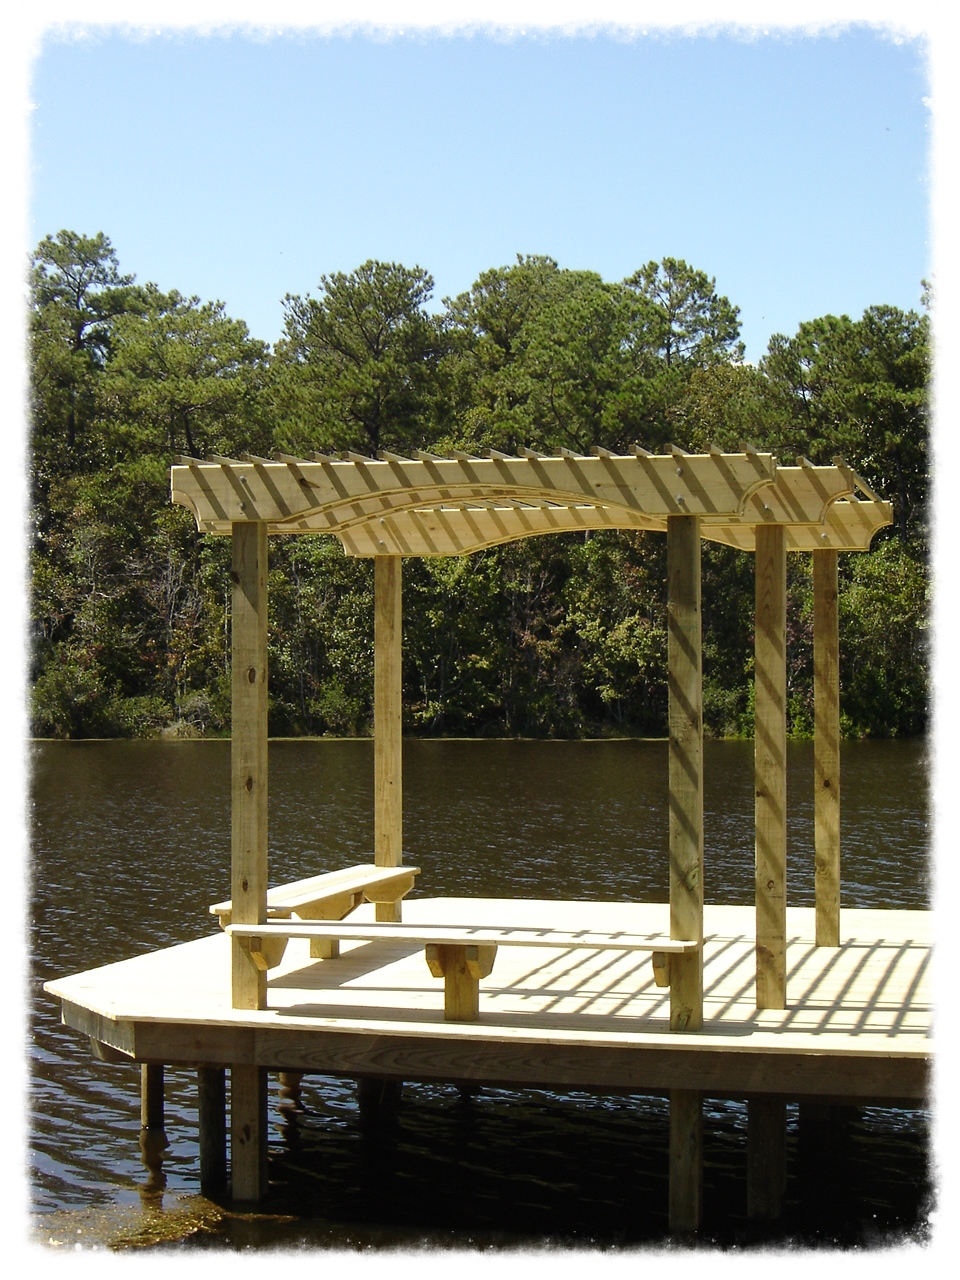 Shade Trellis on Boardwalk